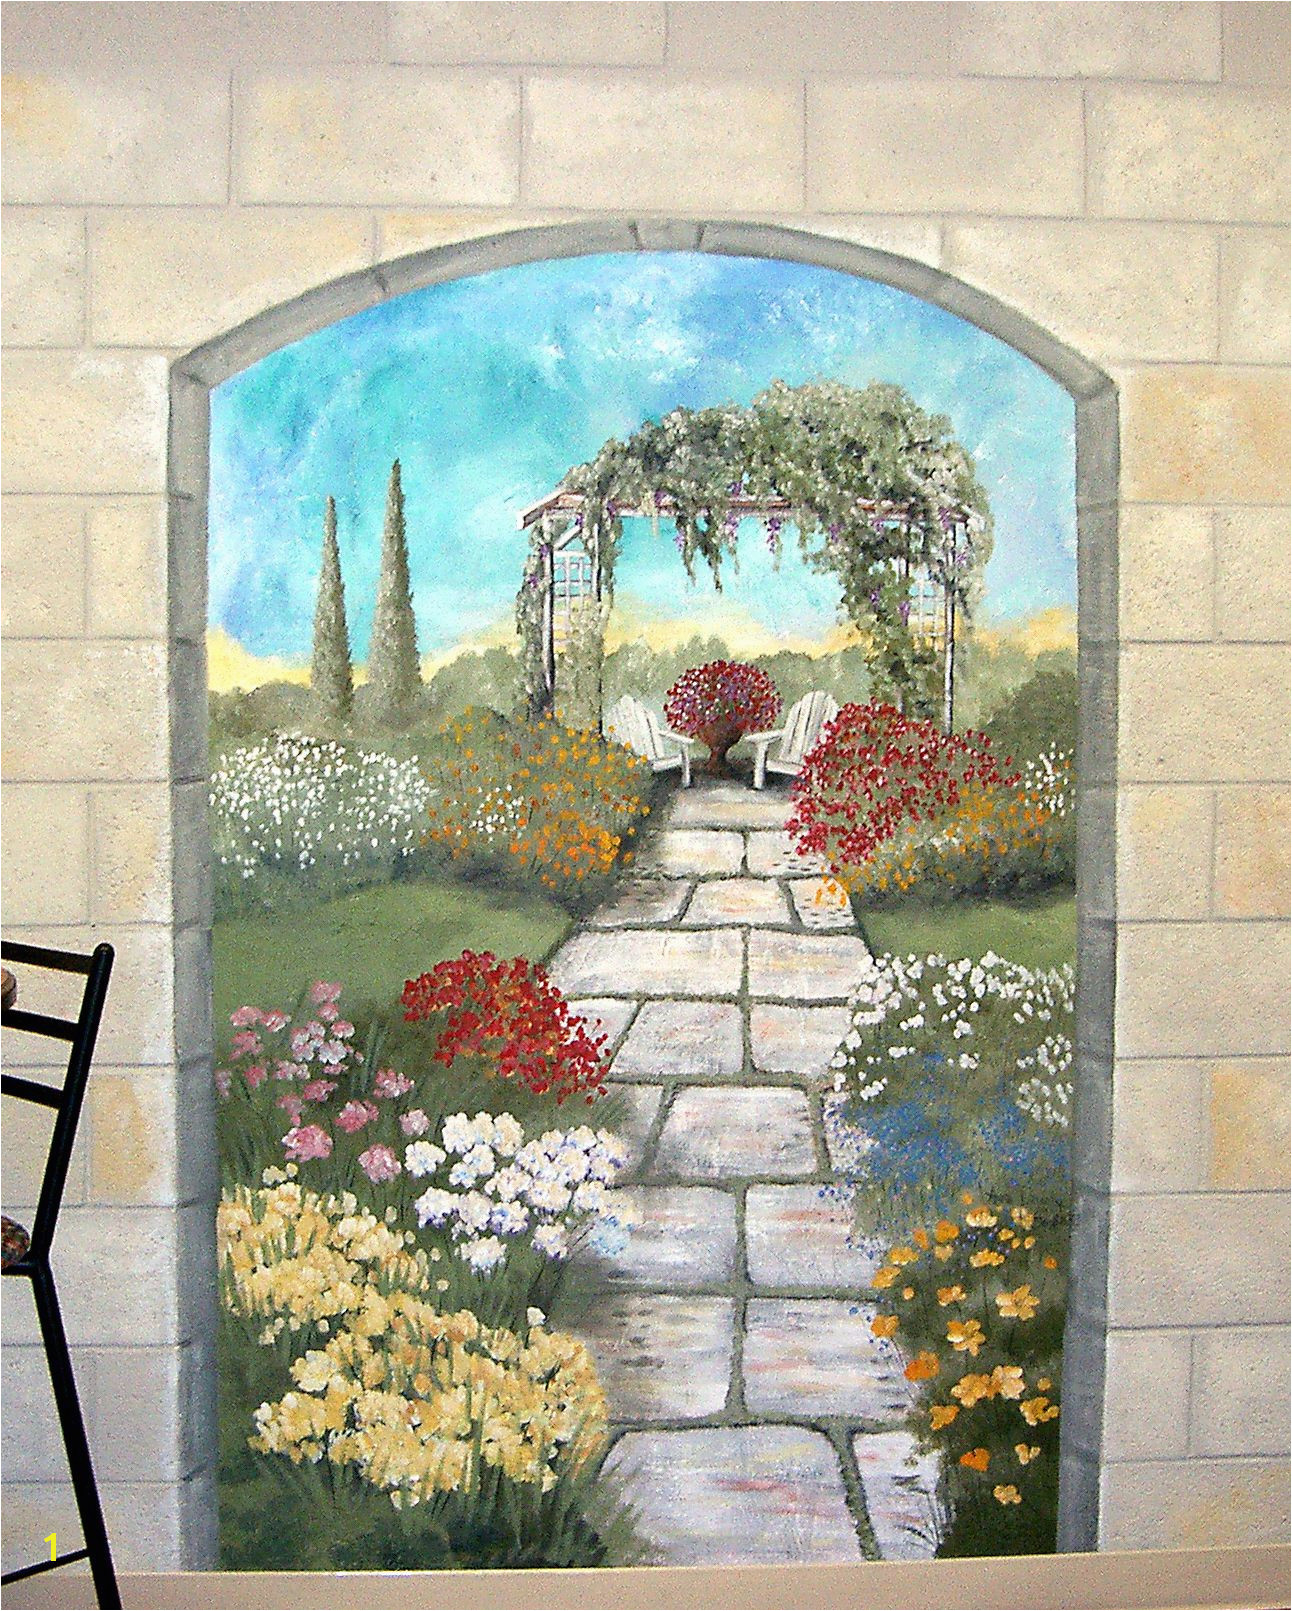 Garden Mural Stencils Garden Mural On A Cement Block Wall Colorful Flower Garden Mural